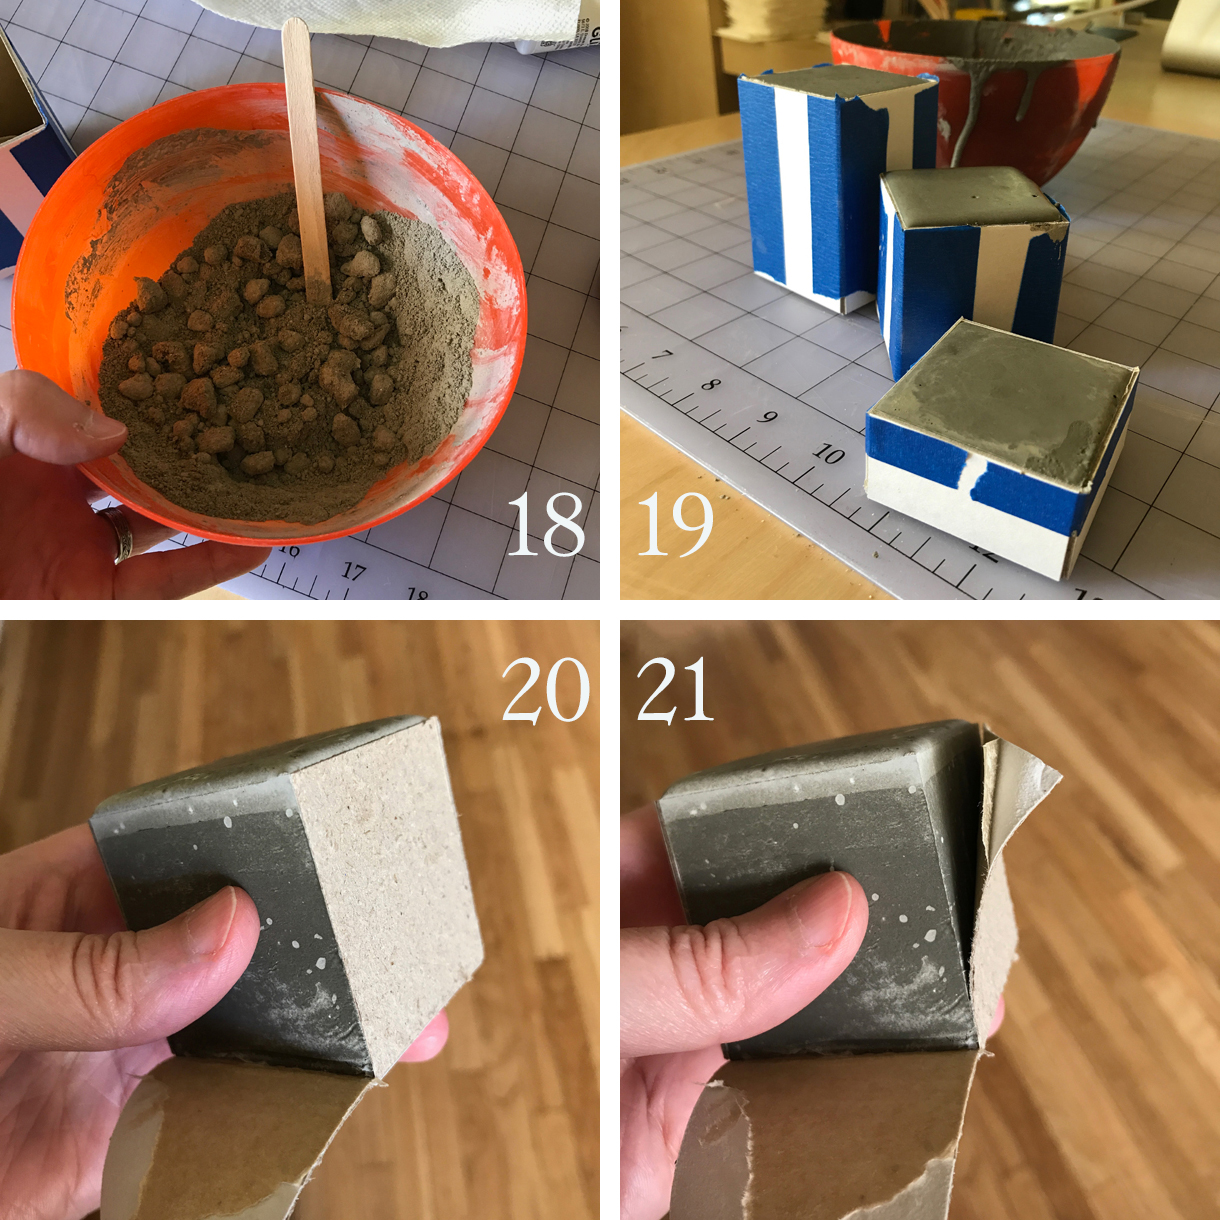 18. Begin mixing a new batch of cement—preferably in a plastic bowl (reserved for this; you won't be able to use it for much else after this). Do this as you did before, but with a larger amount, it's safe to add two pipettes of water at a time instead of just one. You want the finished mixture to resemble Greek yogurt, not melted milkshake. If your mixture gets too runny, add more powder.   19. Pour the mixed cement into your form(s). If you didn't mix enough to fill it, don't panic. Just mix more in the same bowl. As you do this multiple times, the cement will begin setting on the surface of the bowl. This is OK; keep going, mixing the best you can. Fill your forms to the point it looks like they're on the verge of overflowing. Tap the filled forms on your table to encourage the cement to go where it needs to and for air bubbles to release.  20. Let the piece(s) cure for at least an hour. If they feel warm still, leave them for longer. If they feel hard and cool, you're probably safe to remove the form(s). Peel off the masking tape from the corners and then starting with one side, peel the cardboard away from the semi-set cement. Sometimes the paper will separate into layers, leaving the side stuck to the cement.   21. Just gently use your thumbnail to get under the waxed paper. It will peel right off. Peel all of the cardboard off the form(s).